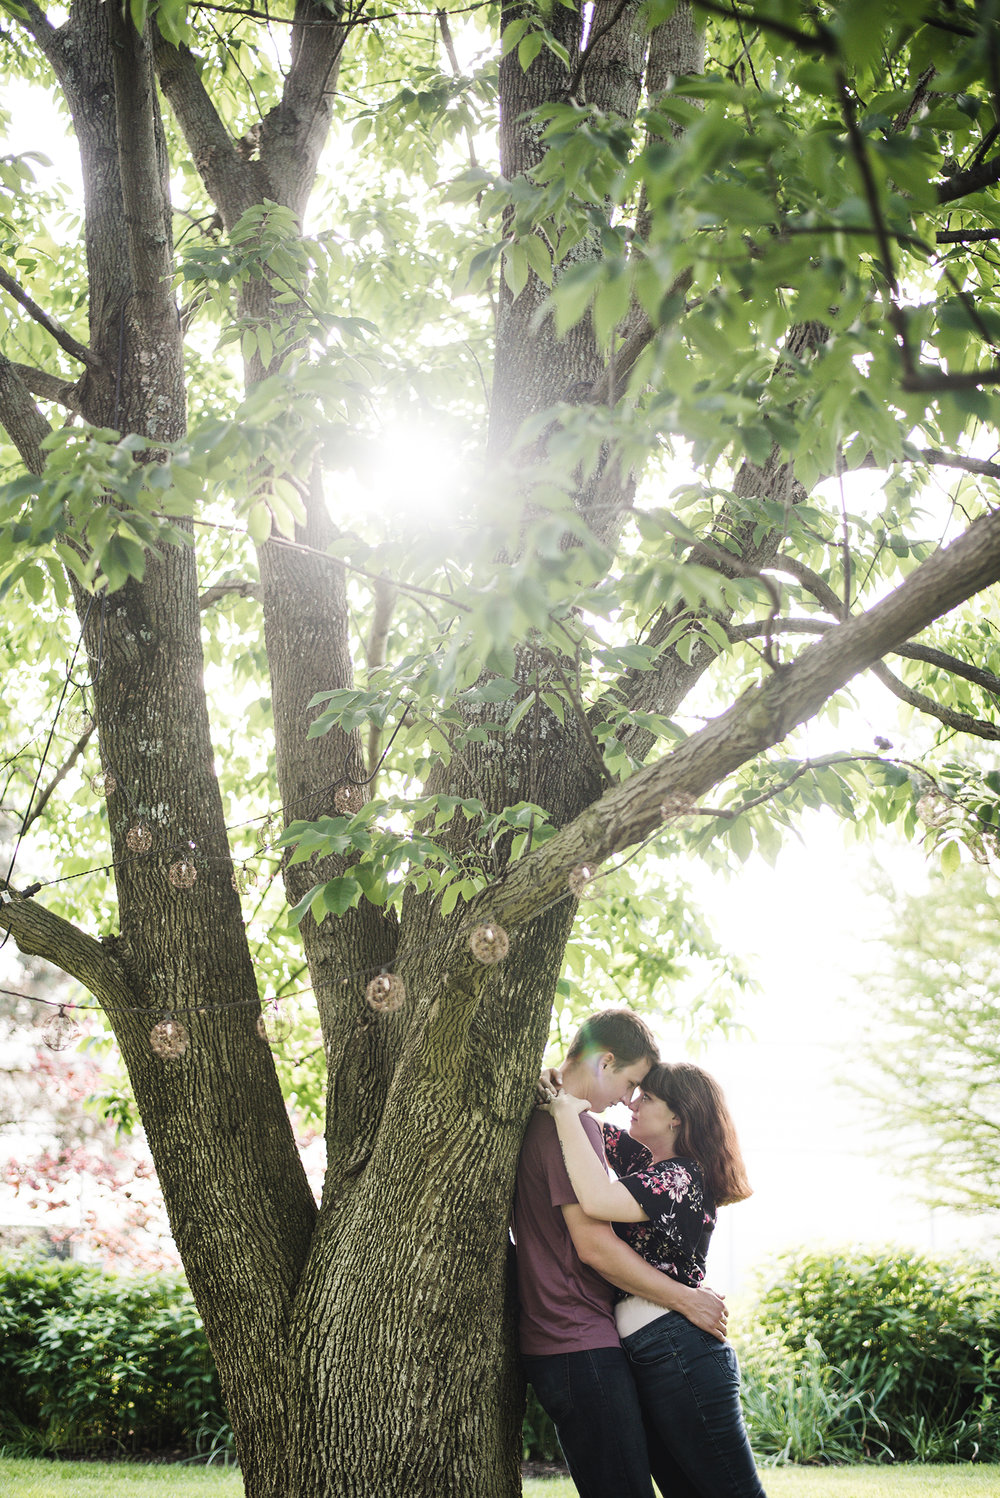 Athens Ohio wedding photographer